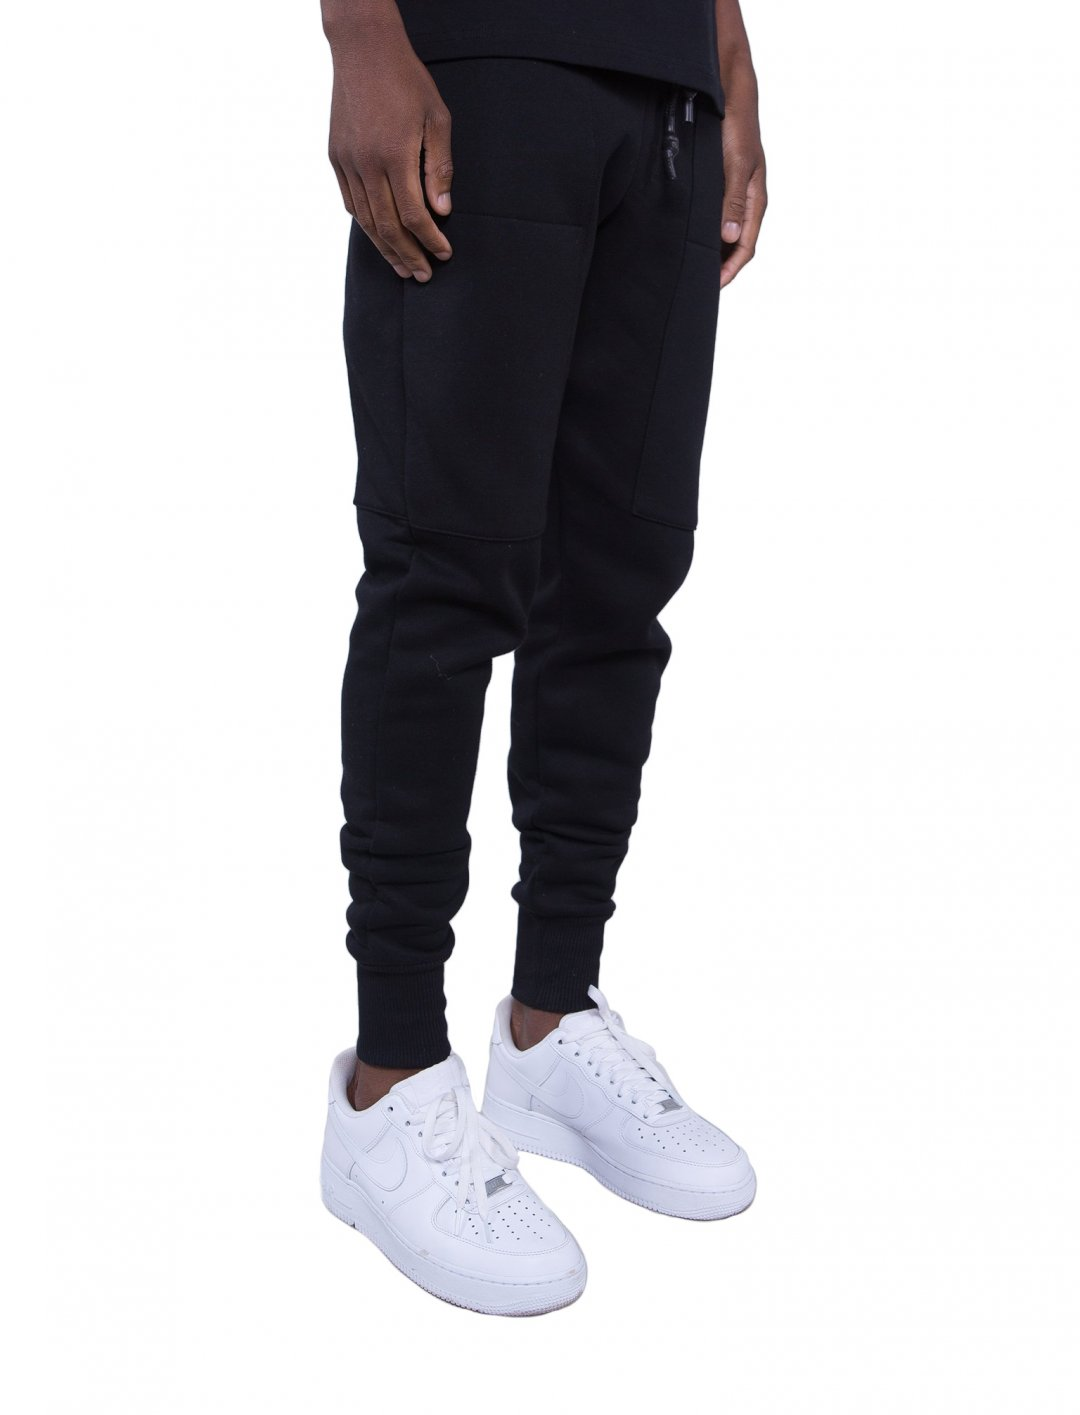 Jamaal's Joggers Other KRBN